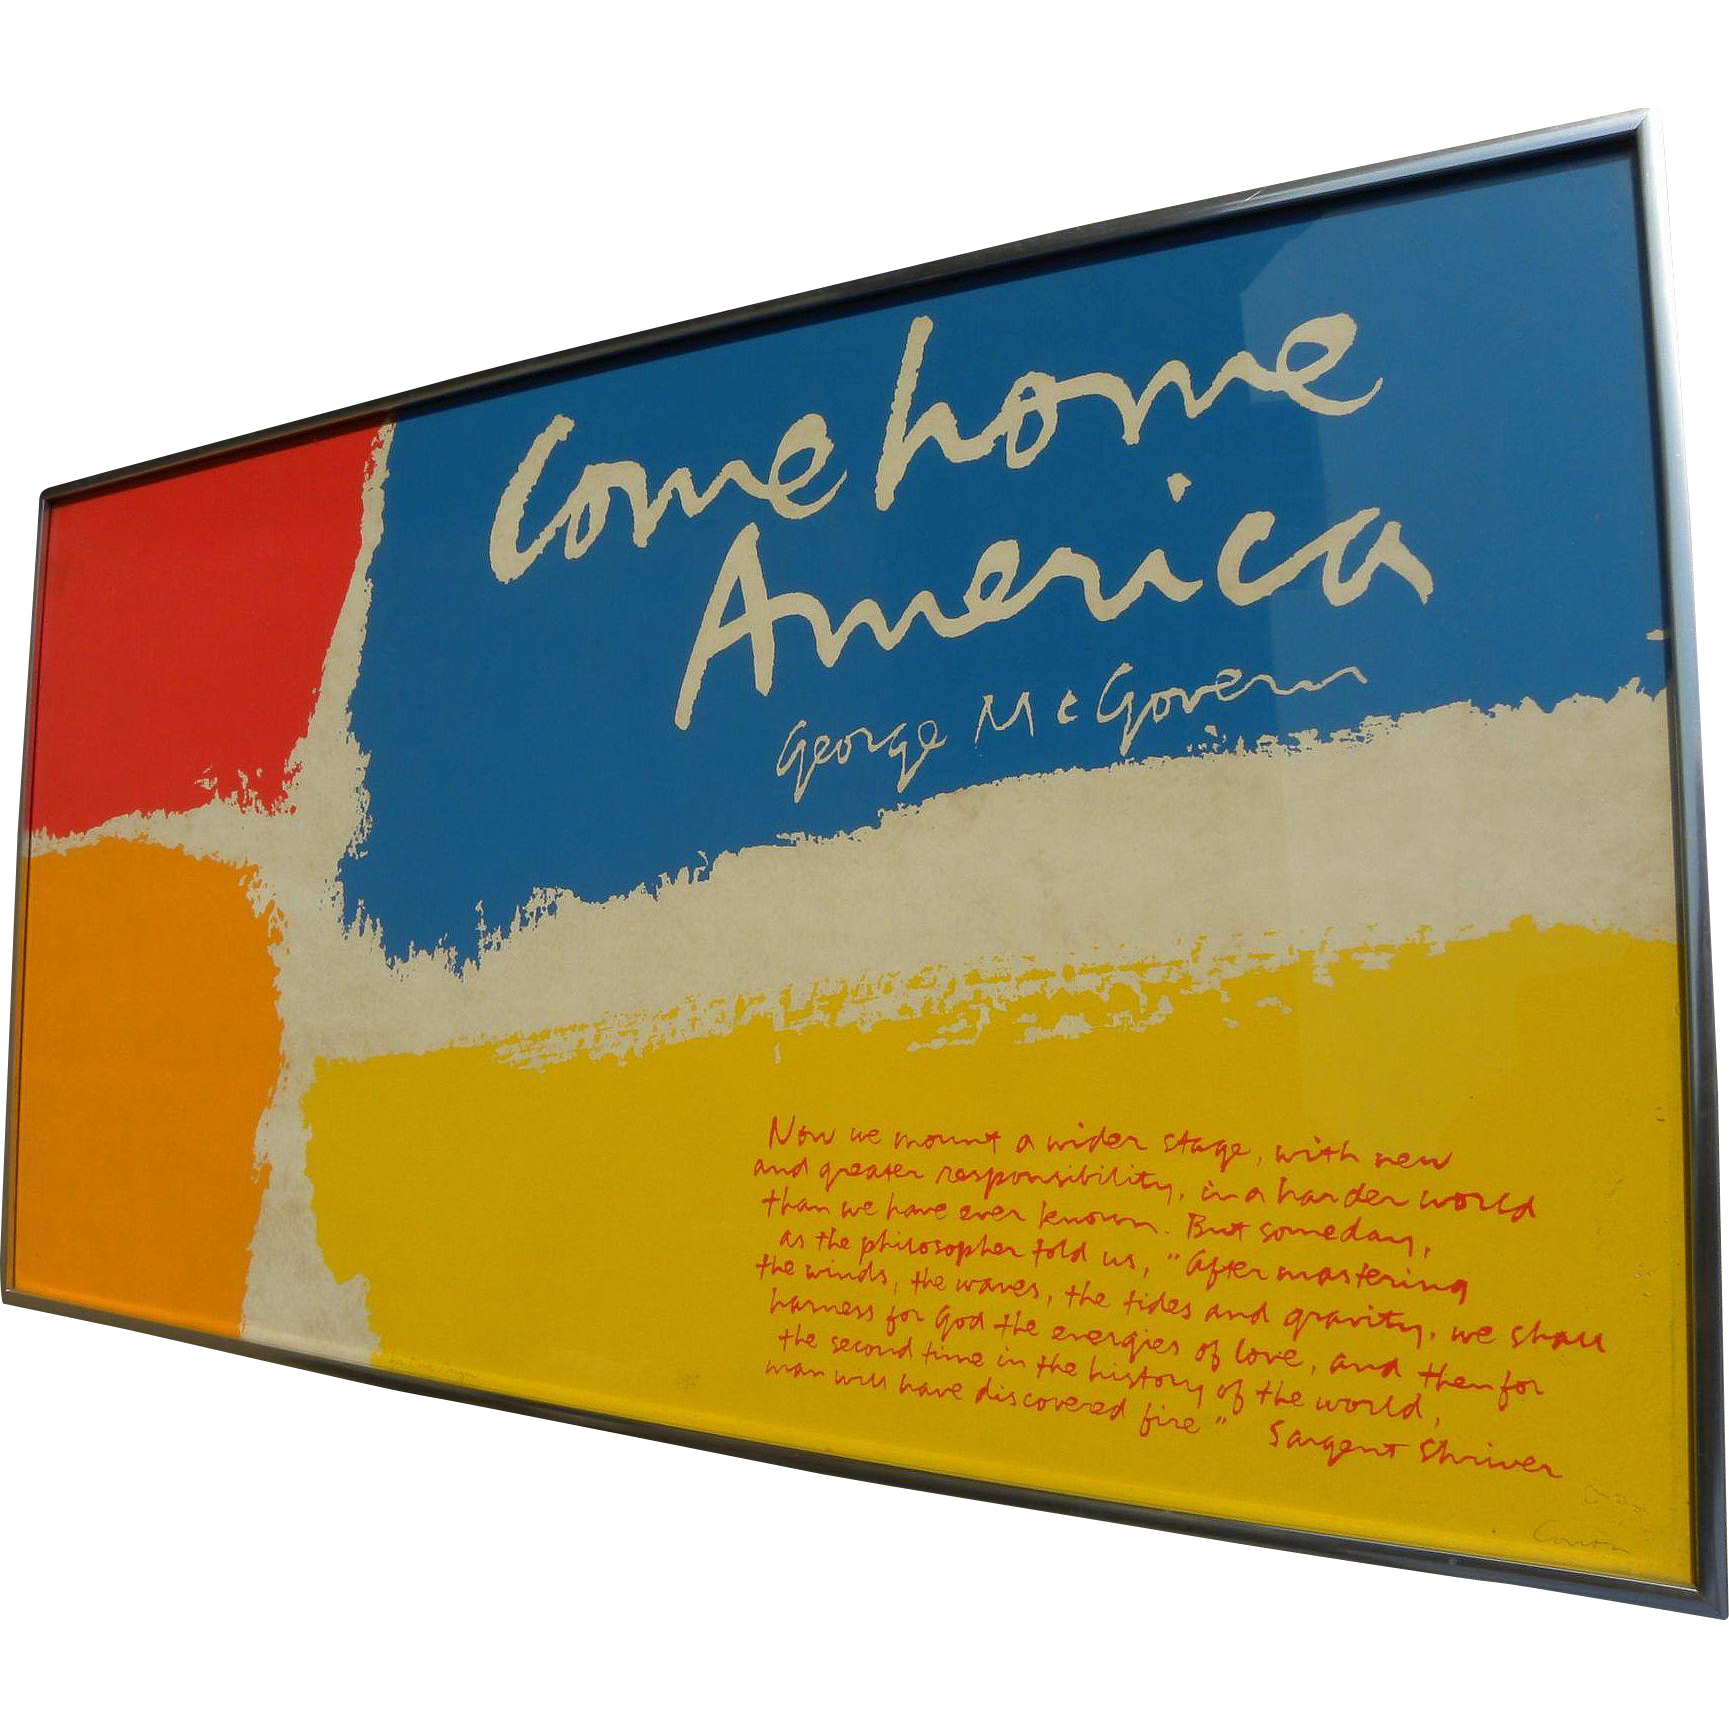 "SISTER MARY CORITA KENT (1918-1986) original hand signed serigraph print ""Come Home America"" by the popular internationally recognized artist"